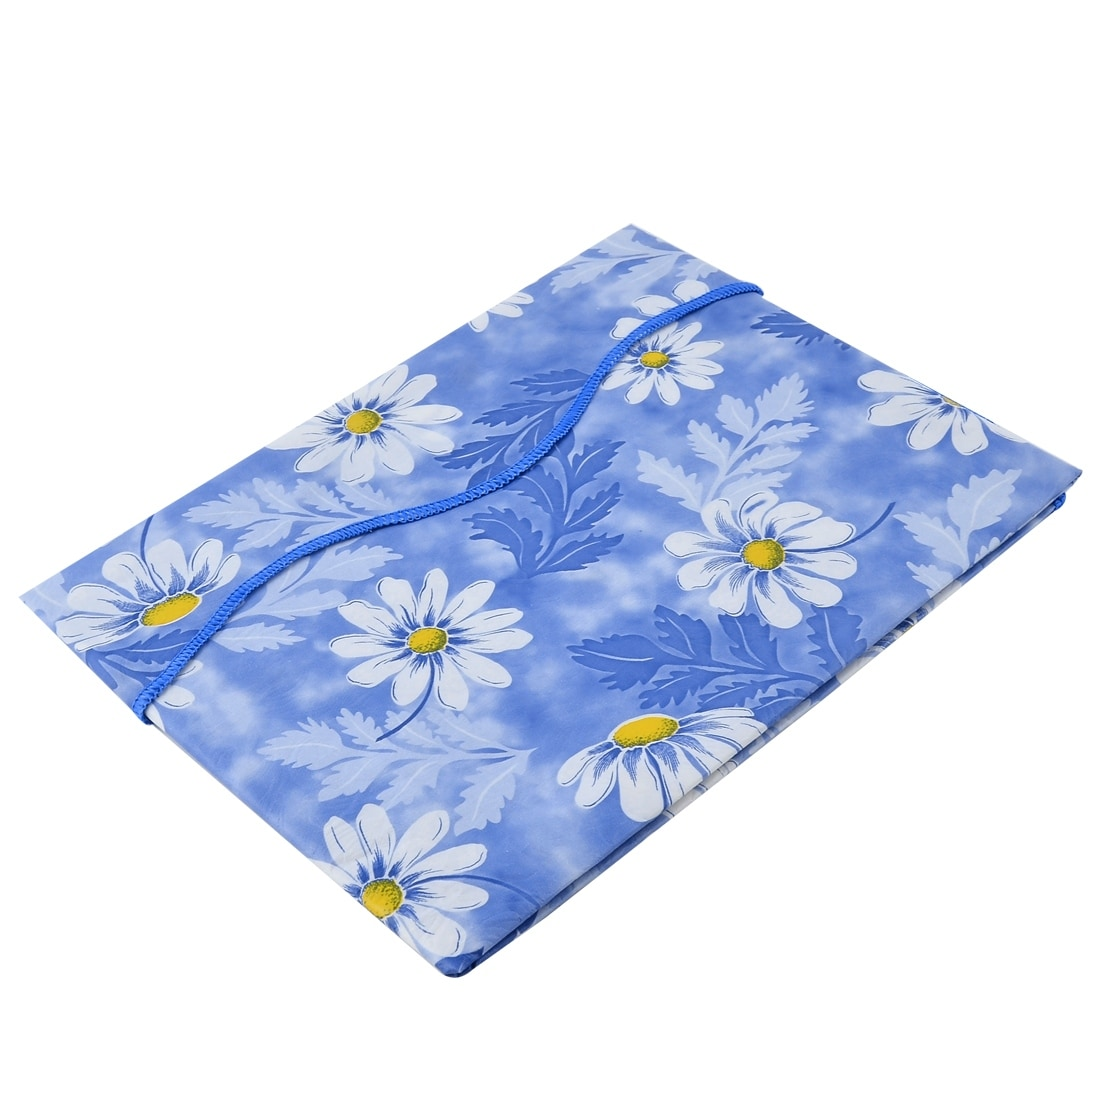 Shop Home Picnic Square Daisy Pattern Tablecloth Table Cloth Cover ...